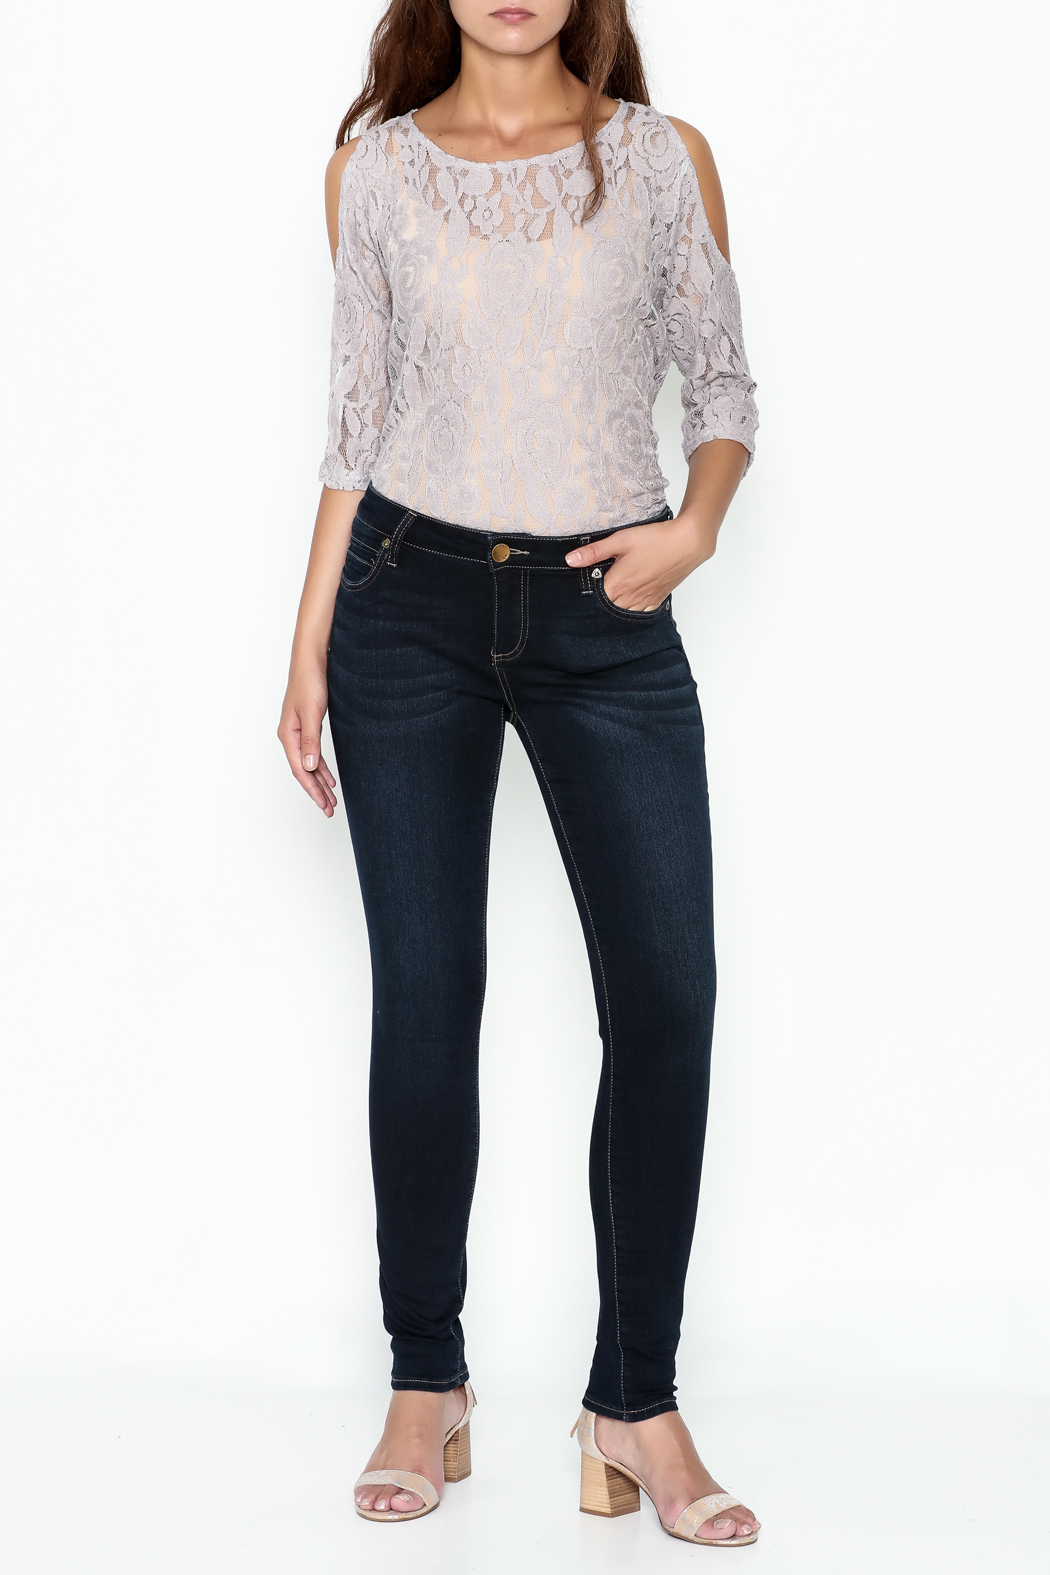 Kut from the Kloth Toothpick Skinny Denim Jeans - Side Cropped Image